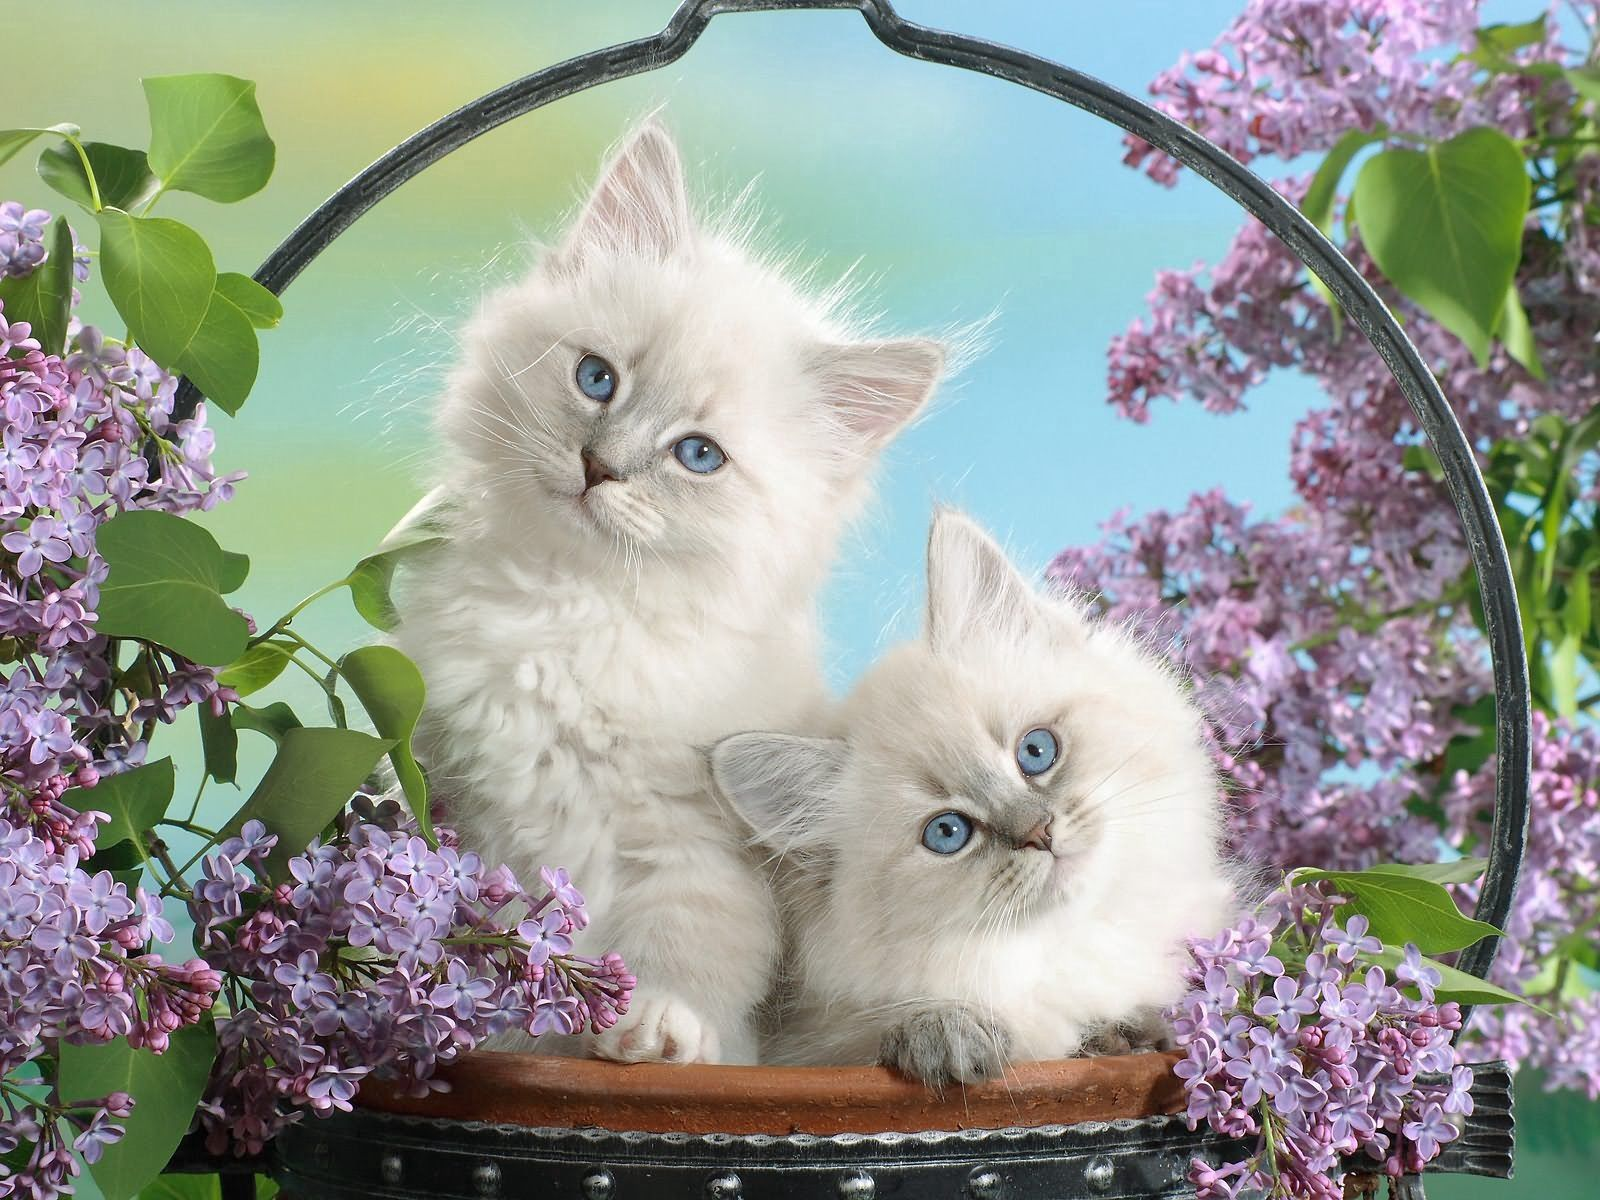 133094 download wallpaper Animals, Leaves, Sit, Fluffy, Basket, Kittens screensavers and pictures for free